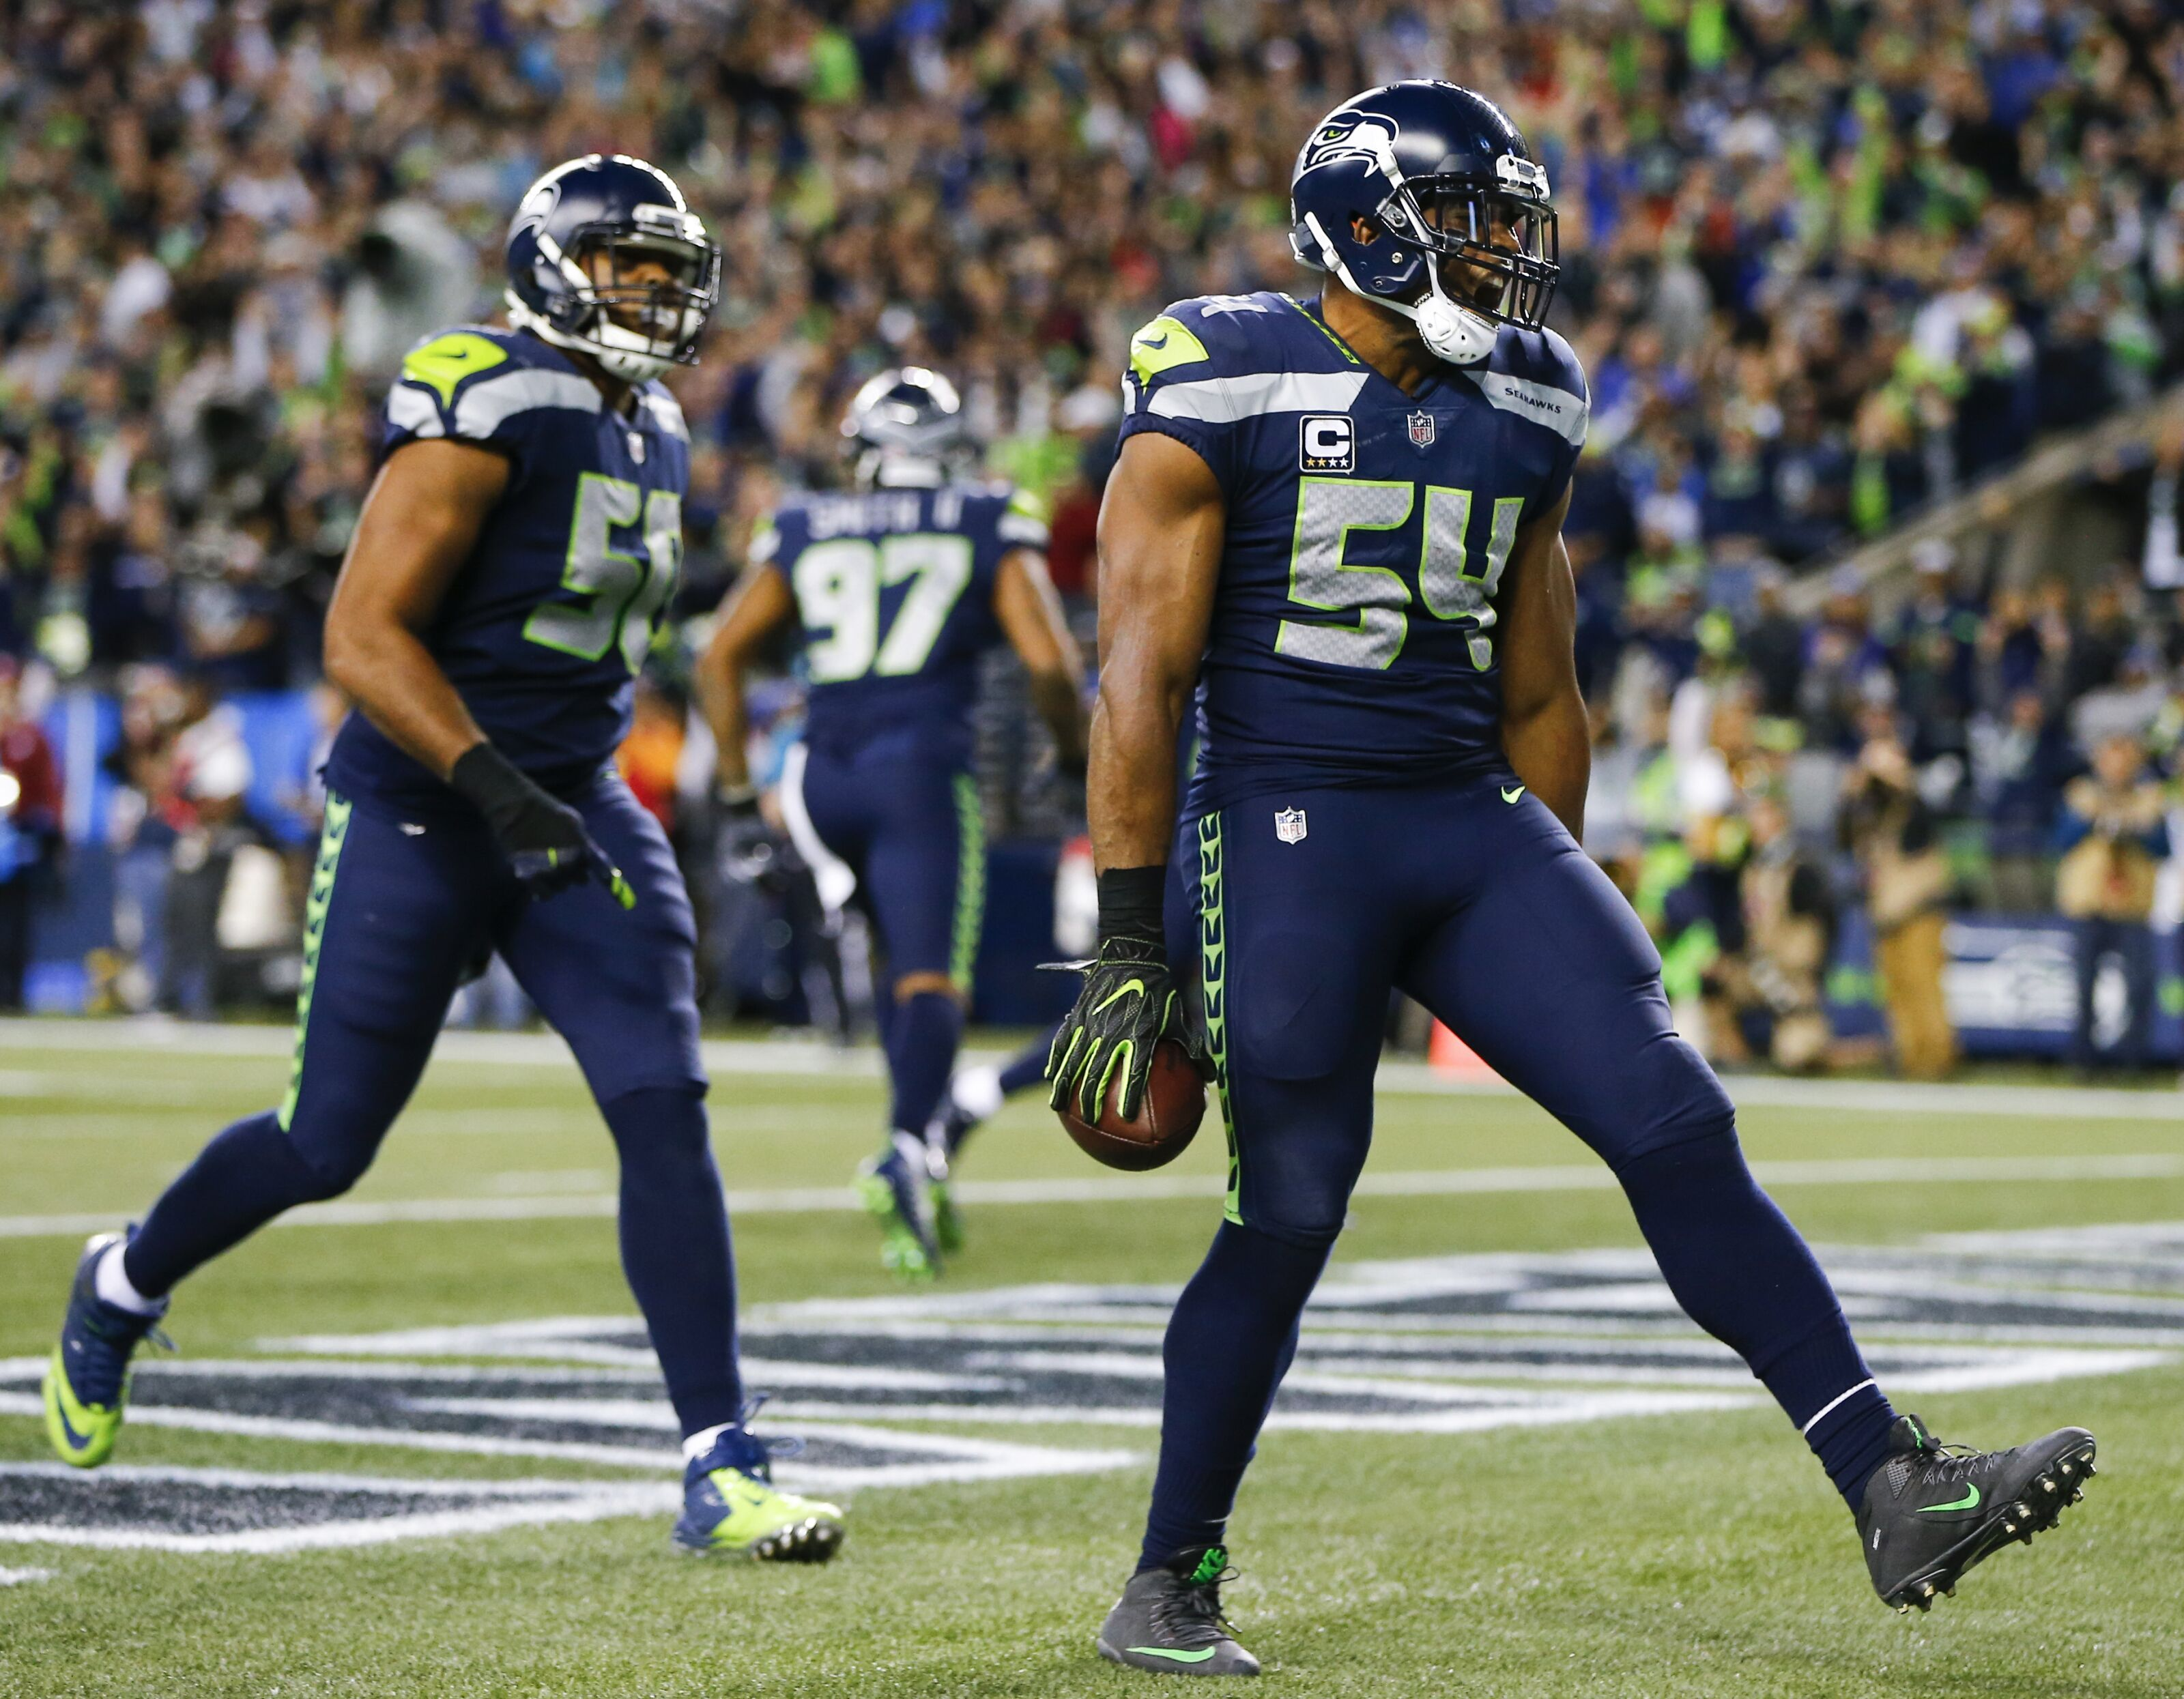 brand new 4fe98 438f5 Seahawks best player is Bobby Wagner and here's why